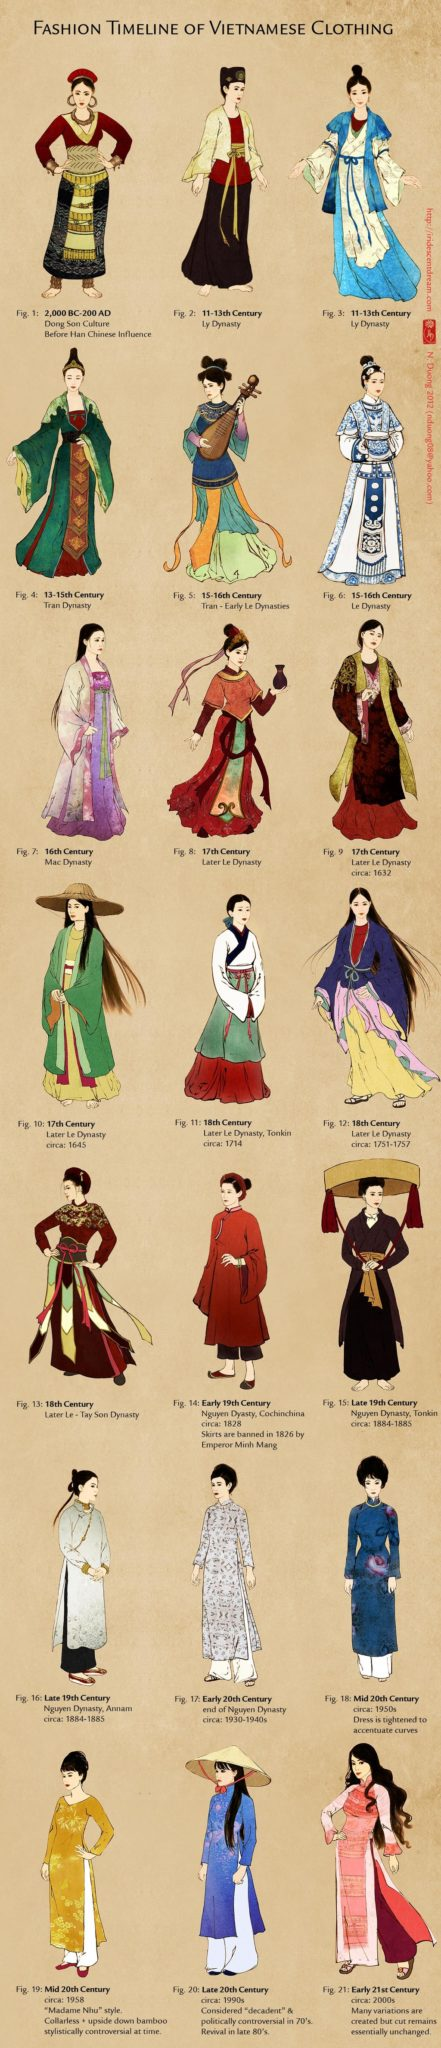 Evolution d'Ao Dai, habillement traditionnel vietnamien